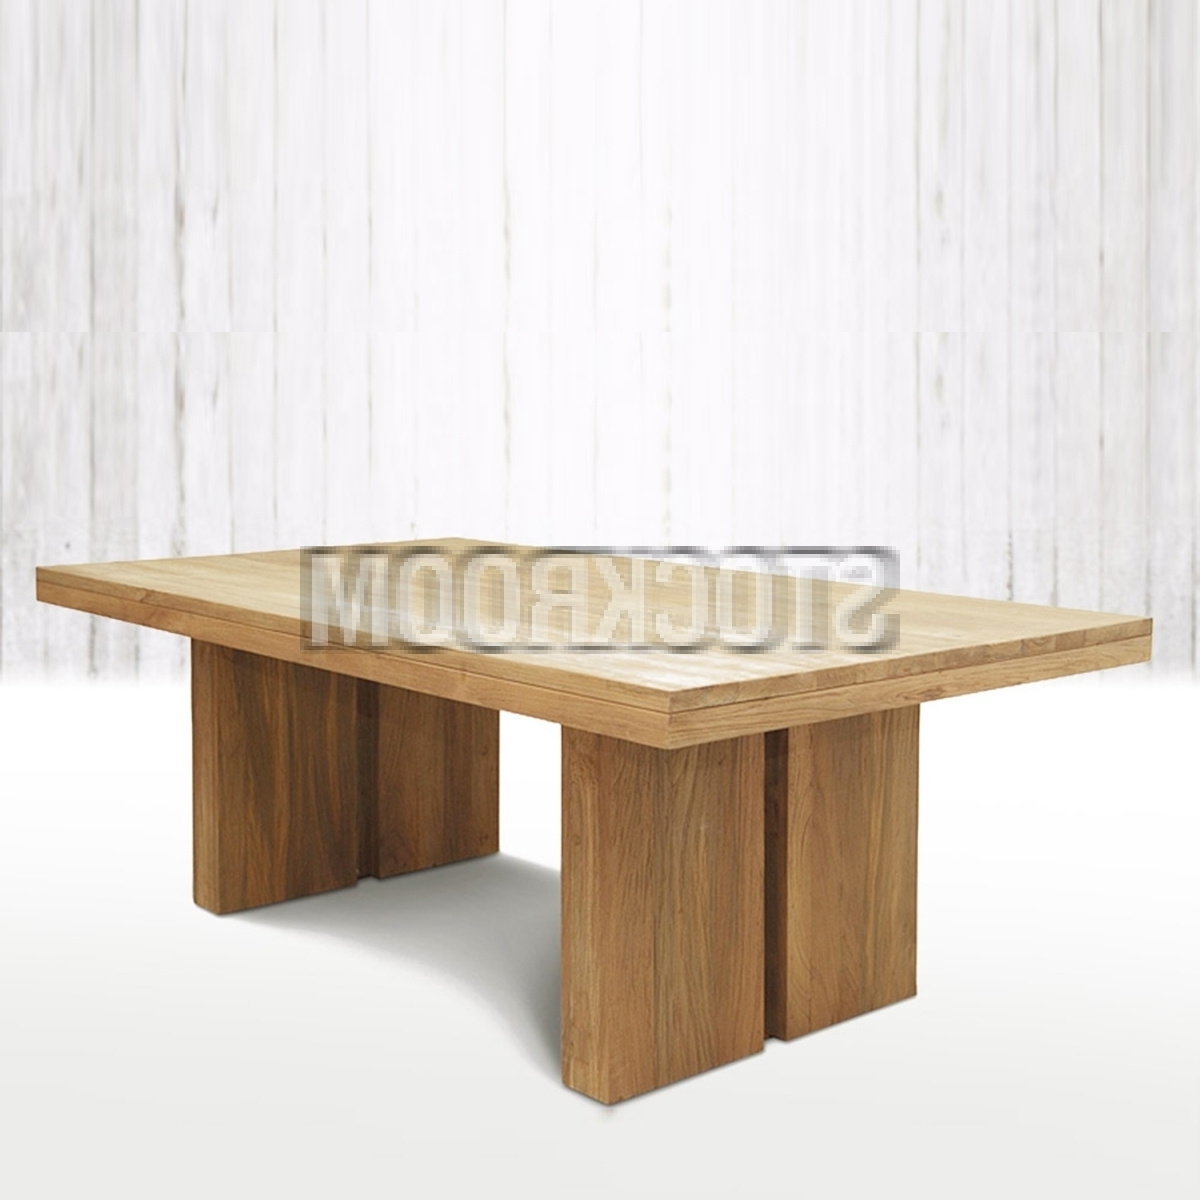 [%Noah Solid Oak Wood Dining Table [Dtaok215] – Hk$7,999.00 For Most Popular Noah Dining Tables|Noah Dining Tables Inside 2018 Noah Solid Oak Wood Dining Table [Dtaok215] – Hk$7,999.00|Widely Used Noah Dining Tables Within Noah Solid Oak Wood Dining Table [Dtaok215] – Hk$7,999.00|Widely Used Noah Solid Oak Wood Dining Table [Dtaok215] – Hk$7, (View 10 of 25)